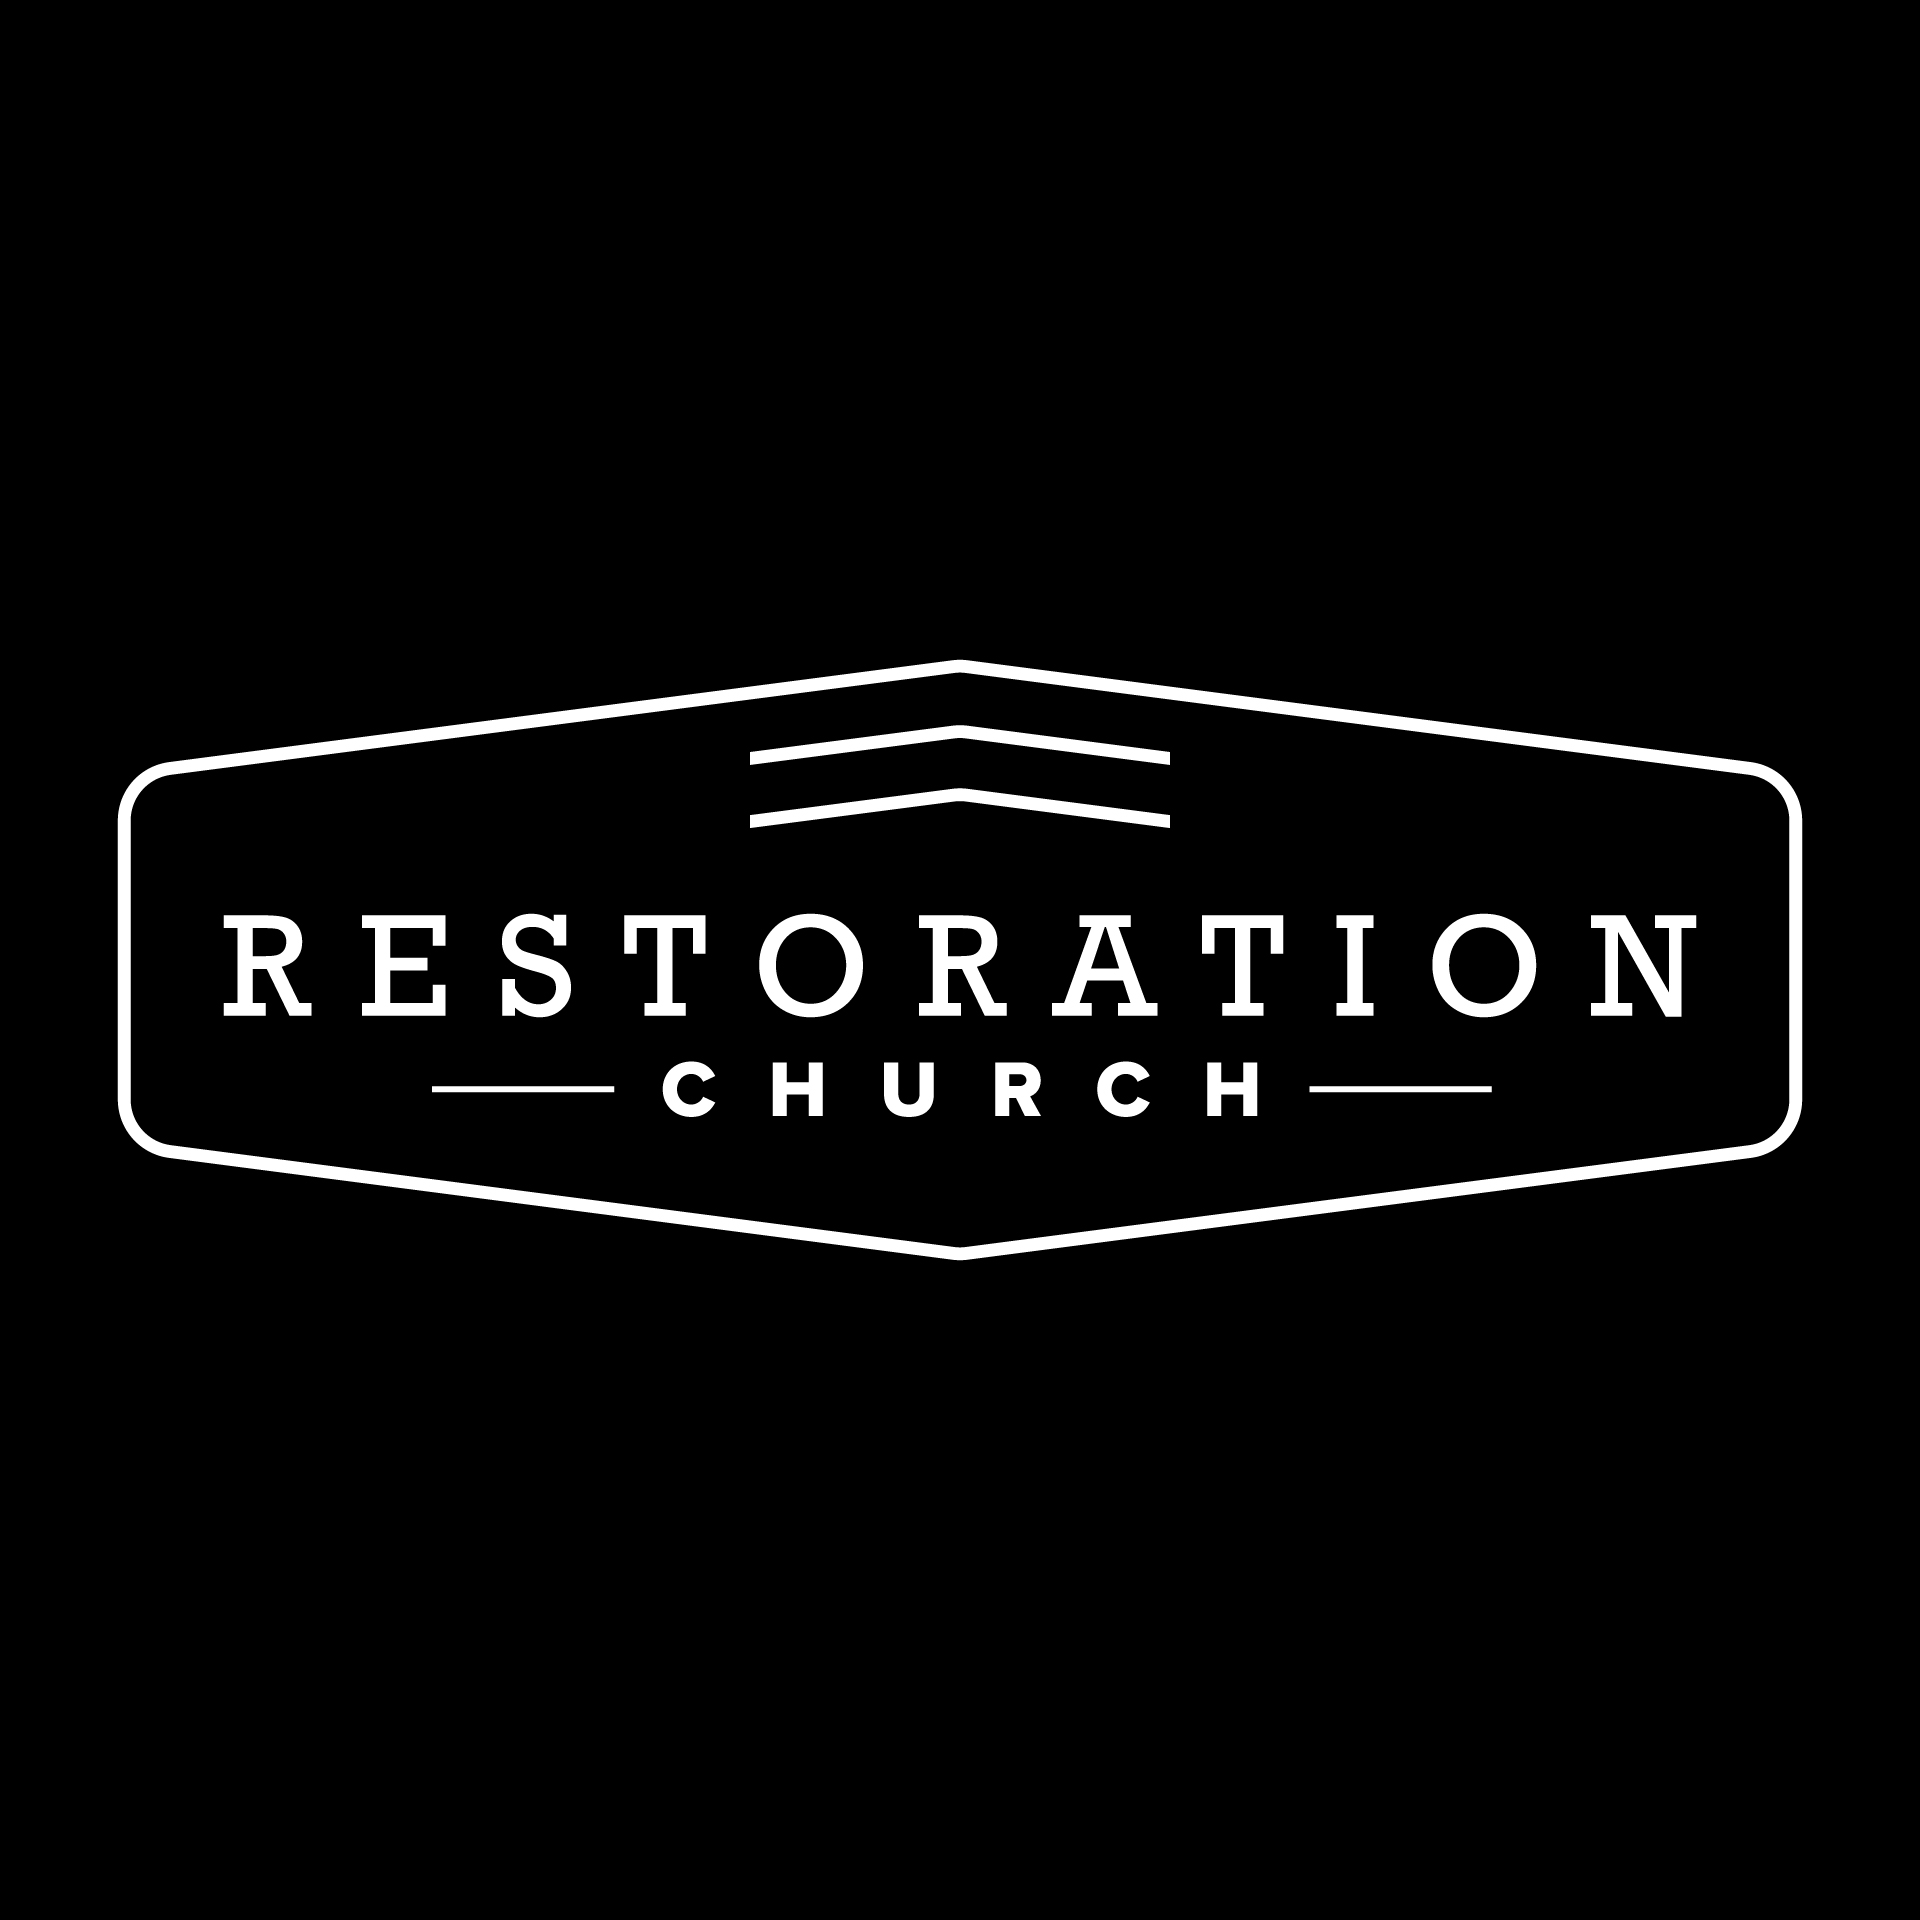 Restoration Church Teachings